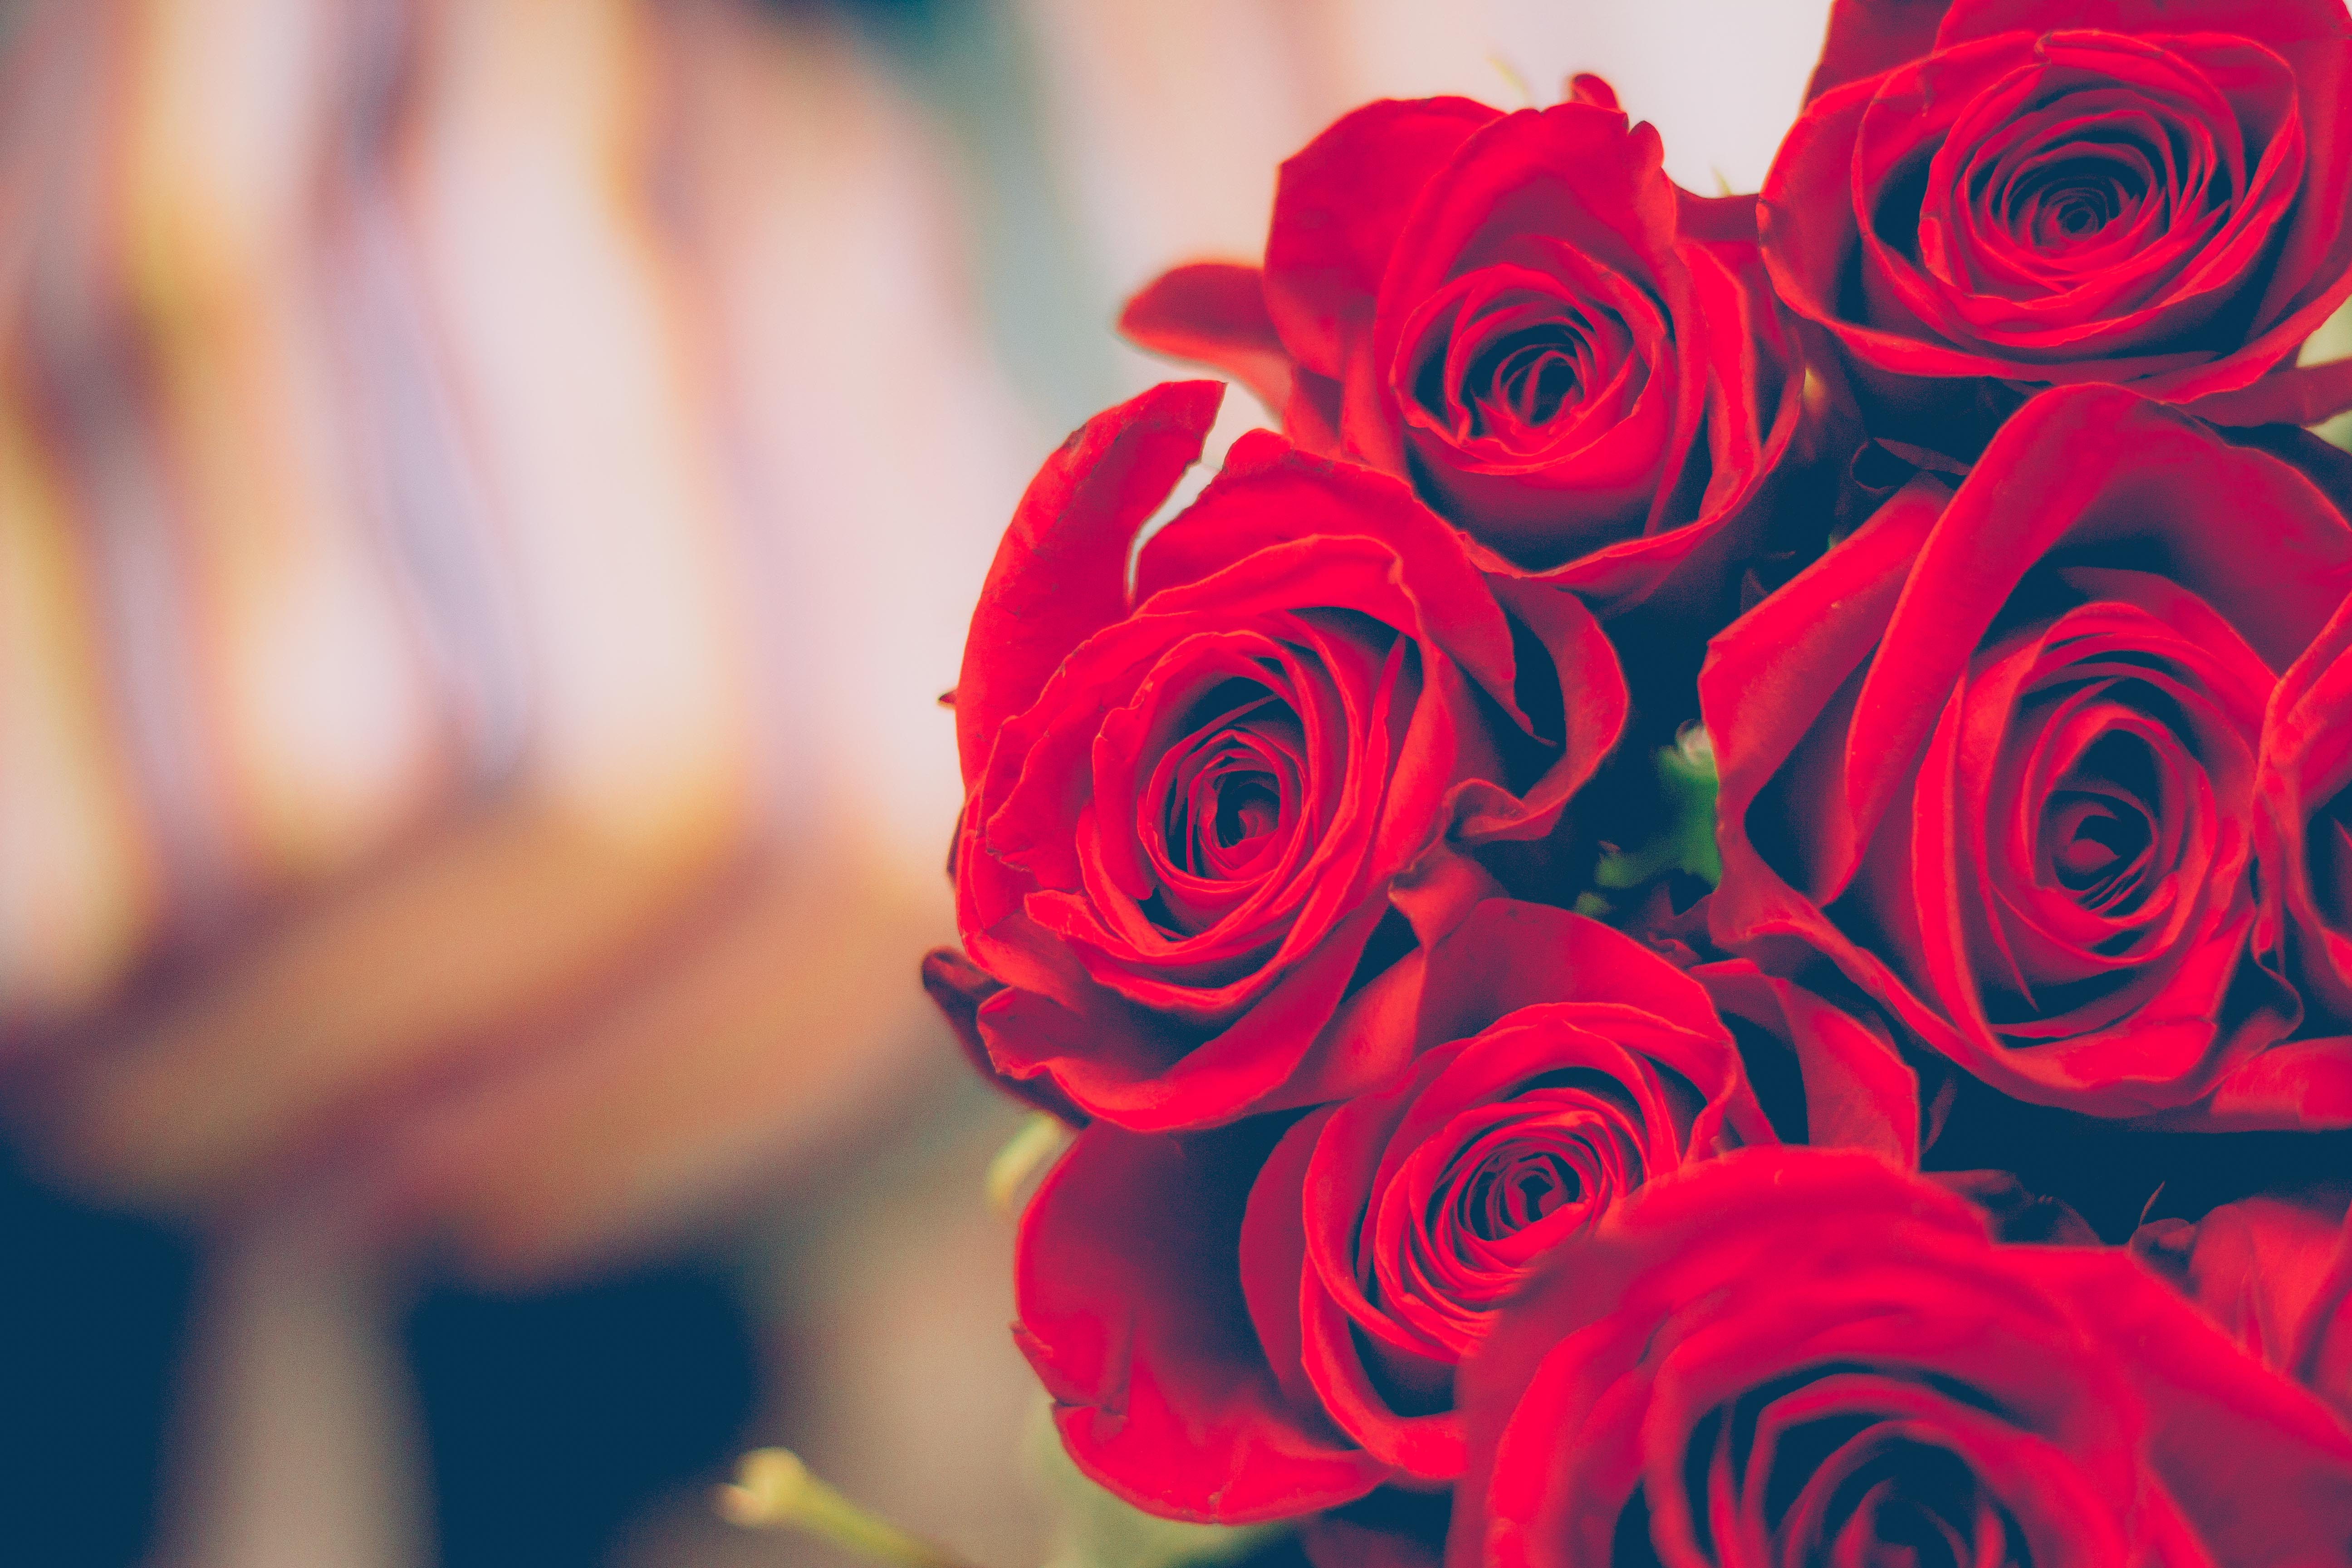 Free Stock Photo Of Red, Flowers, Petals, Blur